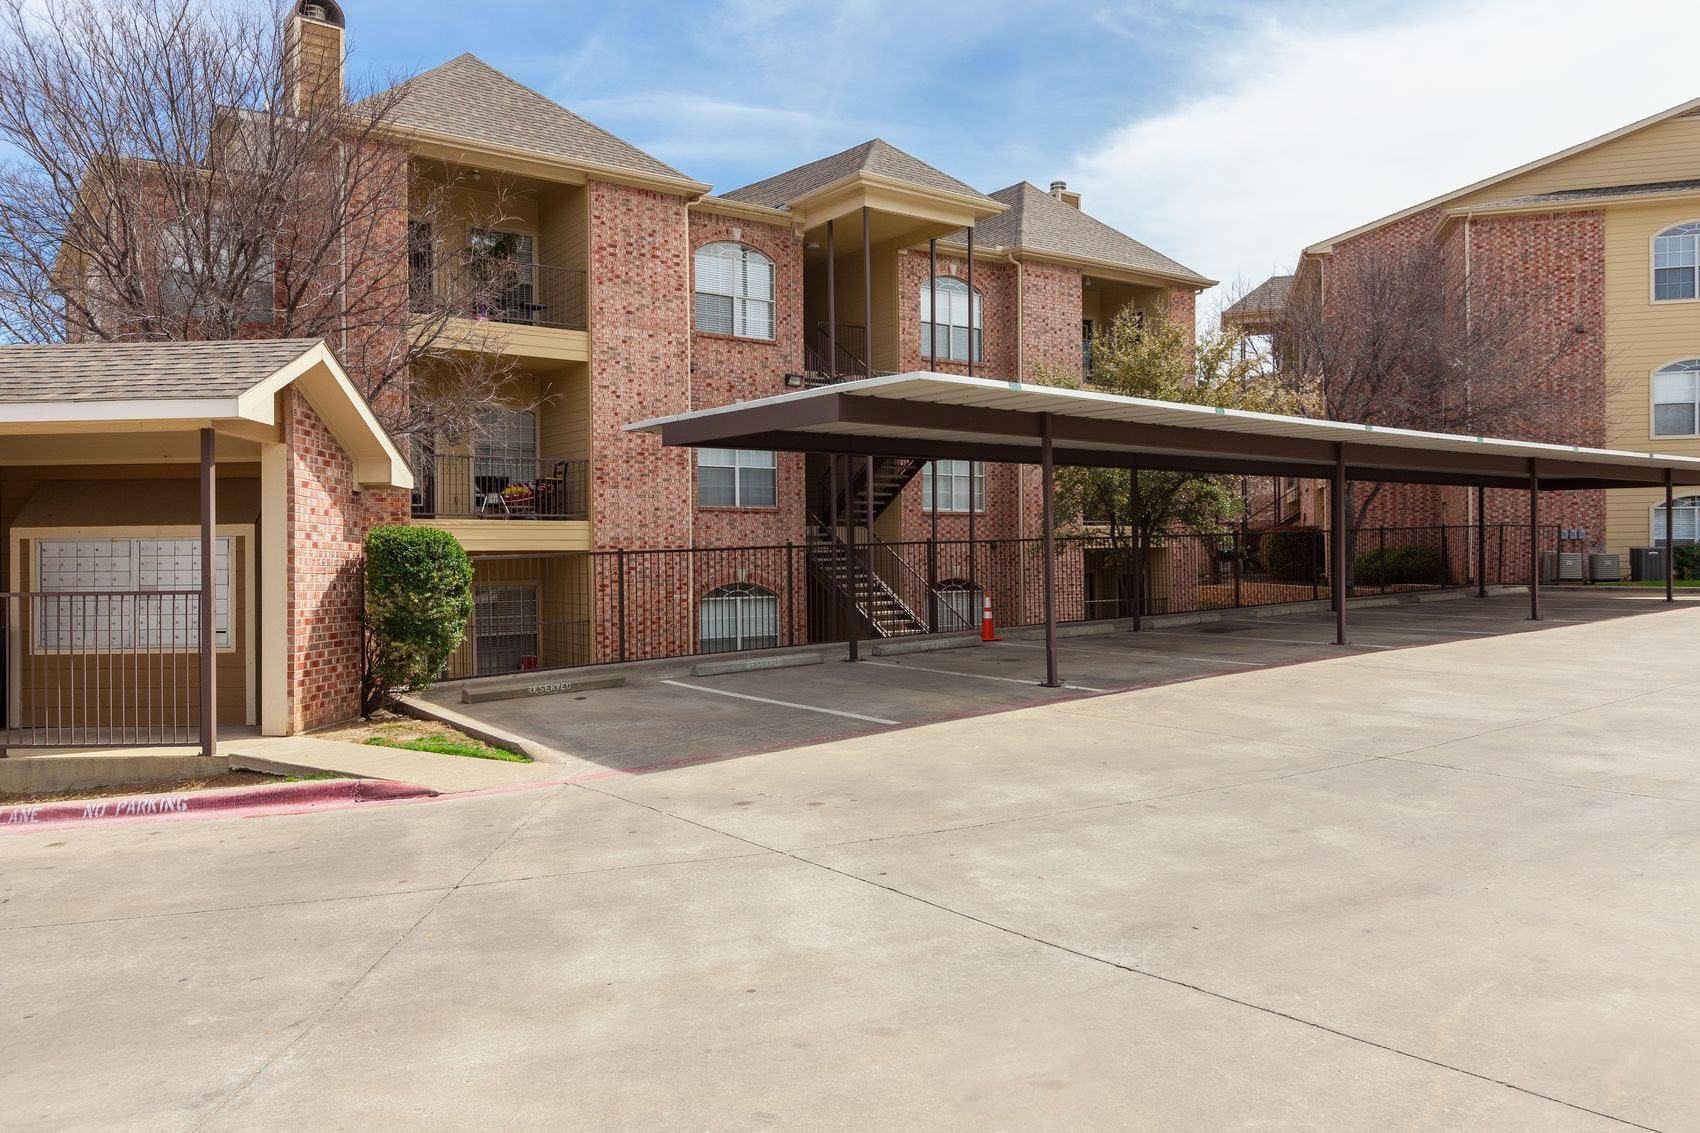 Covered Parking Options at Station 3700 Apartment Homes in Euless, Texas